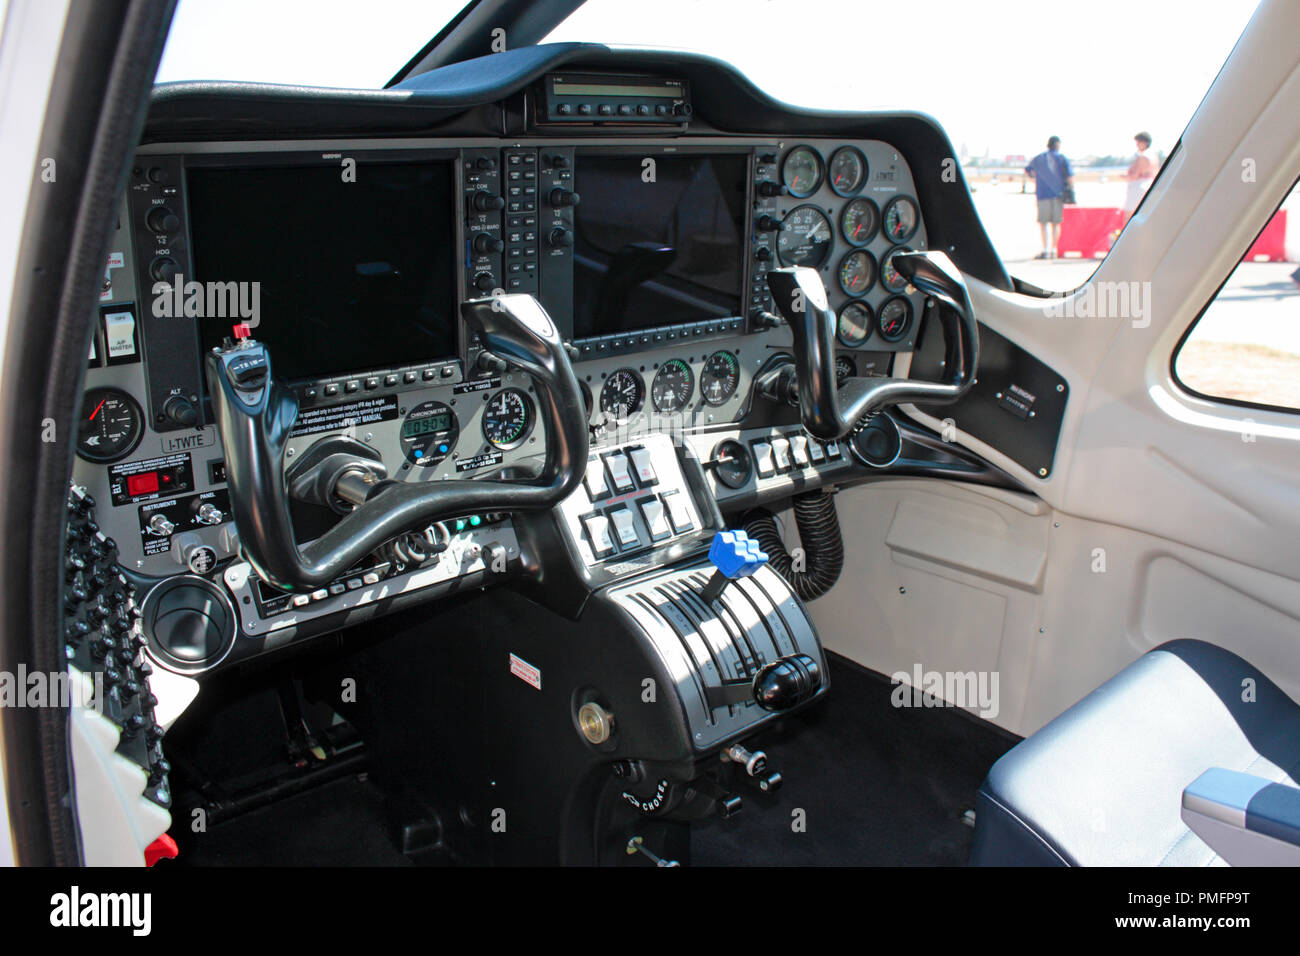 Tecnam P2006T light aircraft cockpit interior with modern display screens in the instrument panel - Stock Image